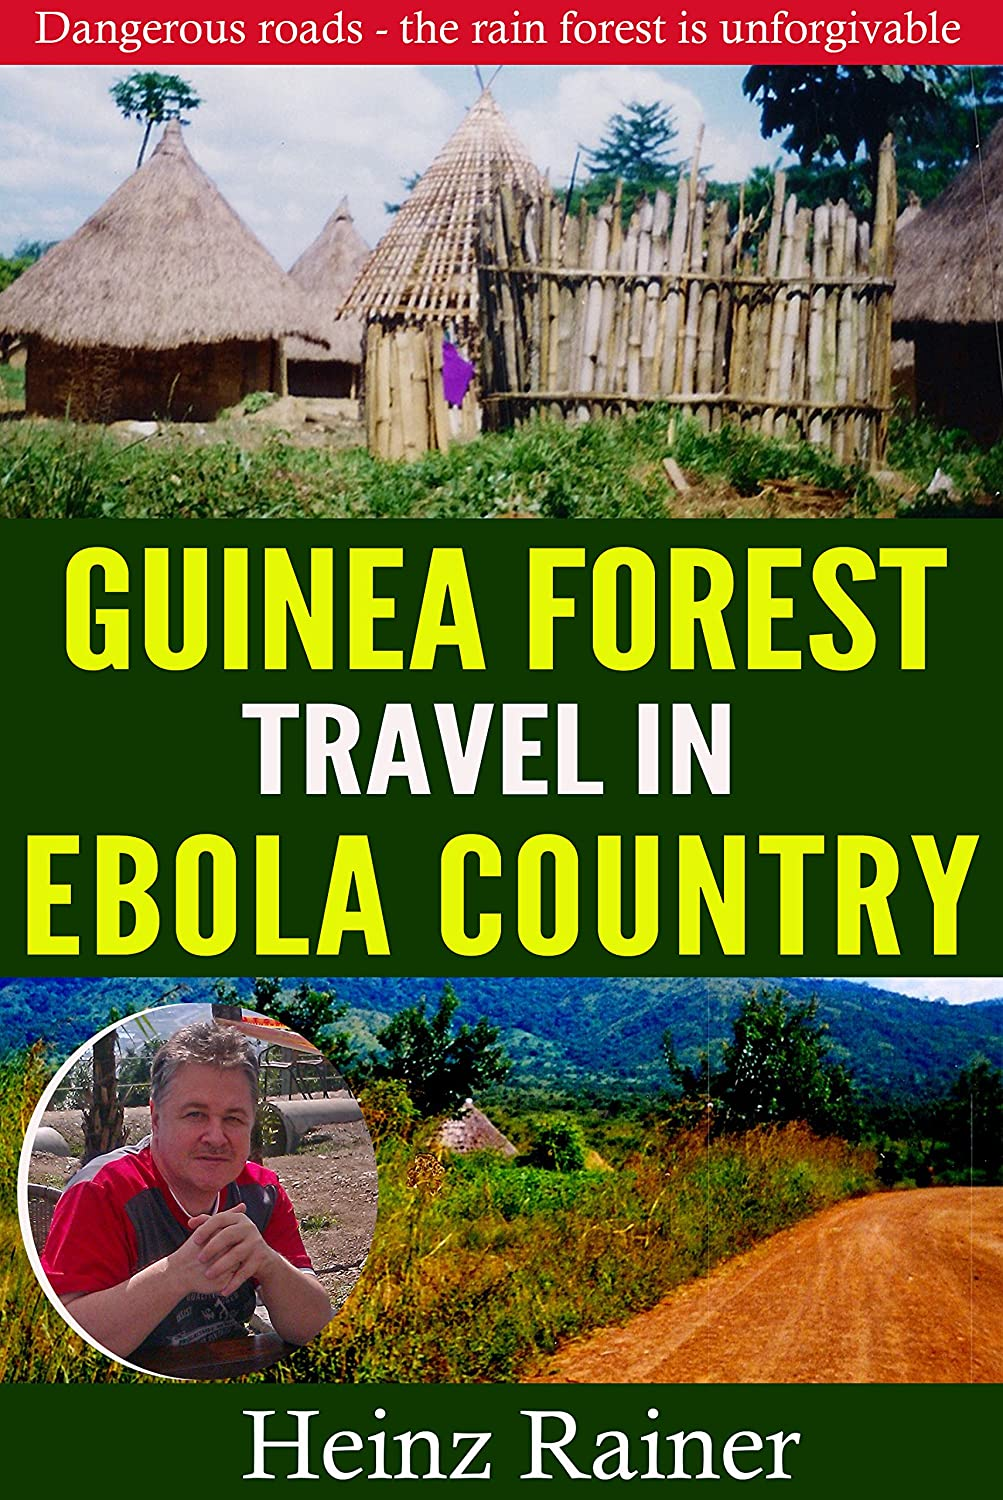 91Nuk-PM1VL._SL1500_ Travel in Ebola virus country: Dangerous roads - the rain forest is unforgivable